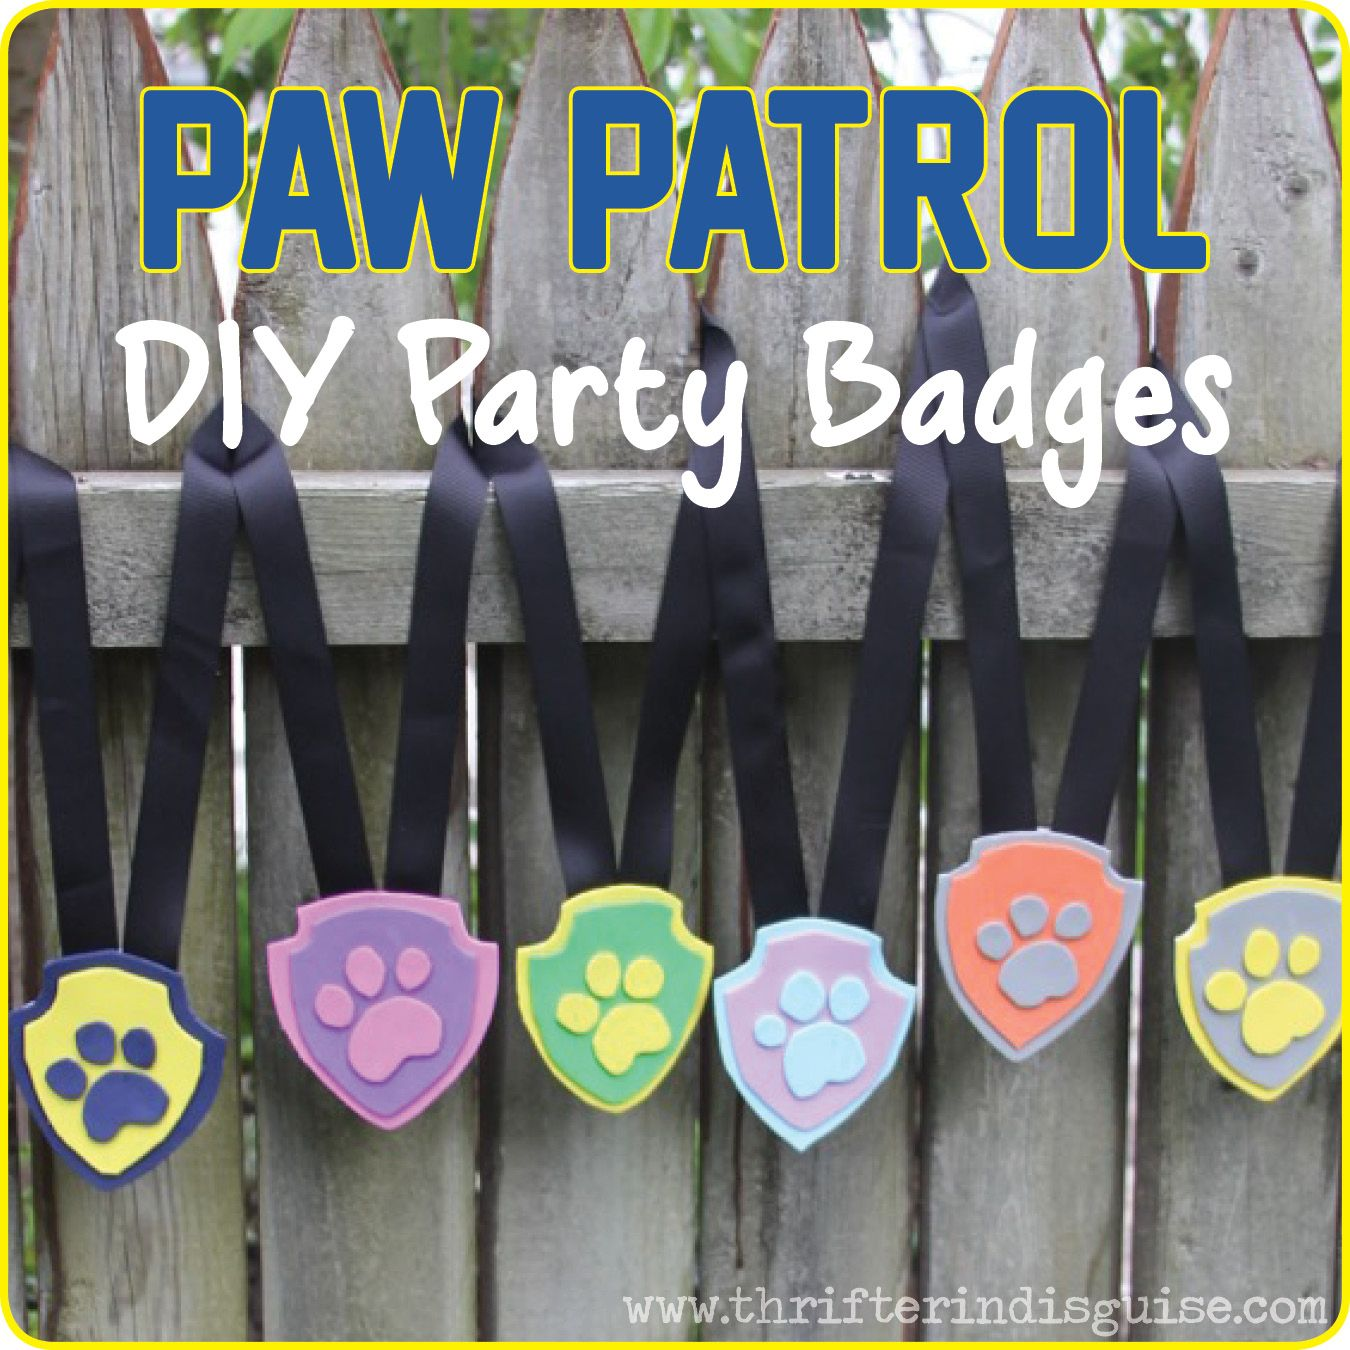 Big happy birthday badges party products party delights - Favors For Paw Patrol Birthday Party